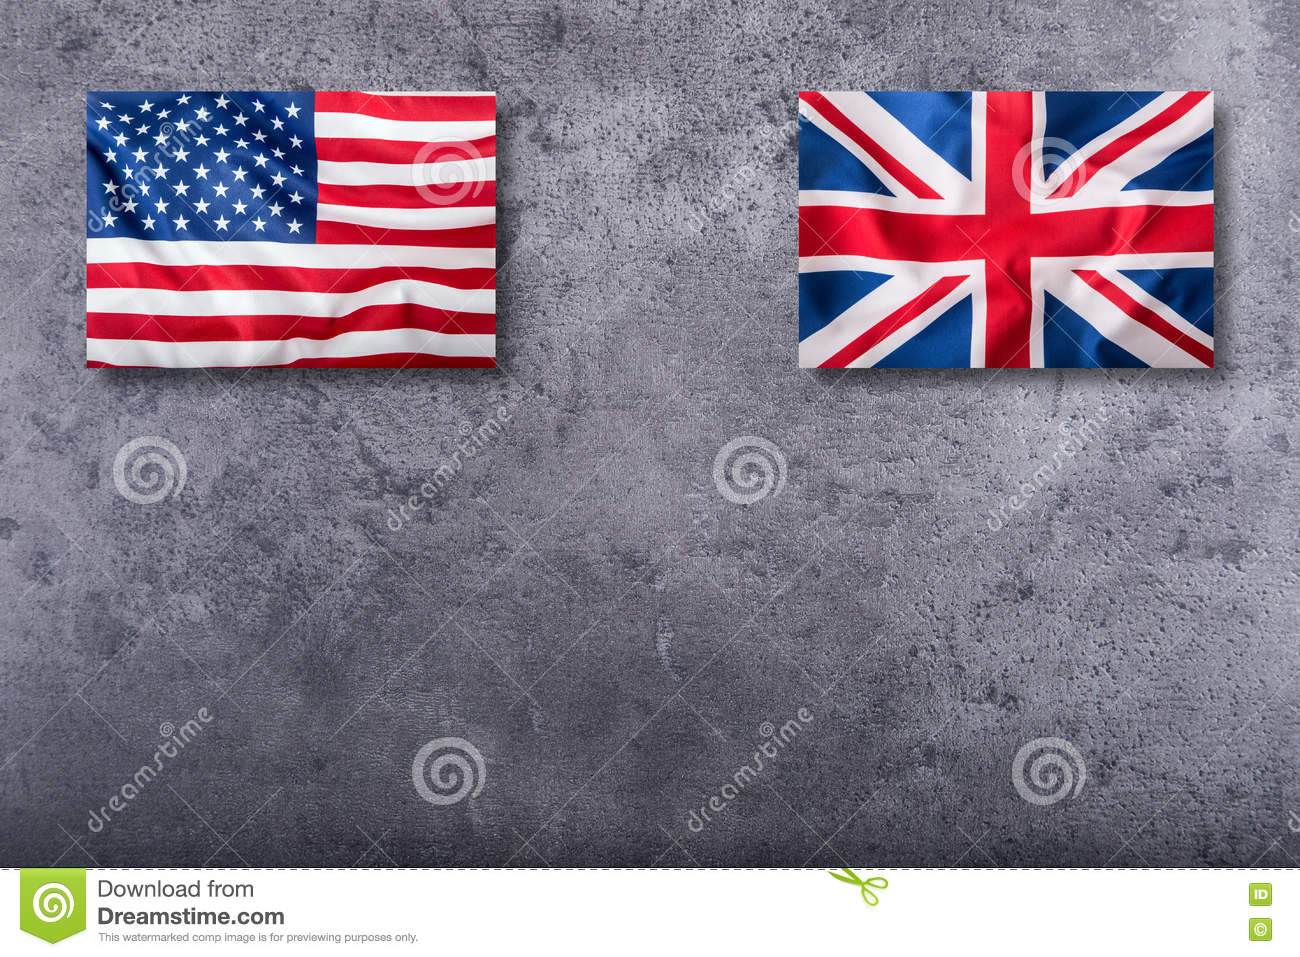 Flags of the USA and the UK. Union Jack flag on concrete background